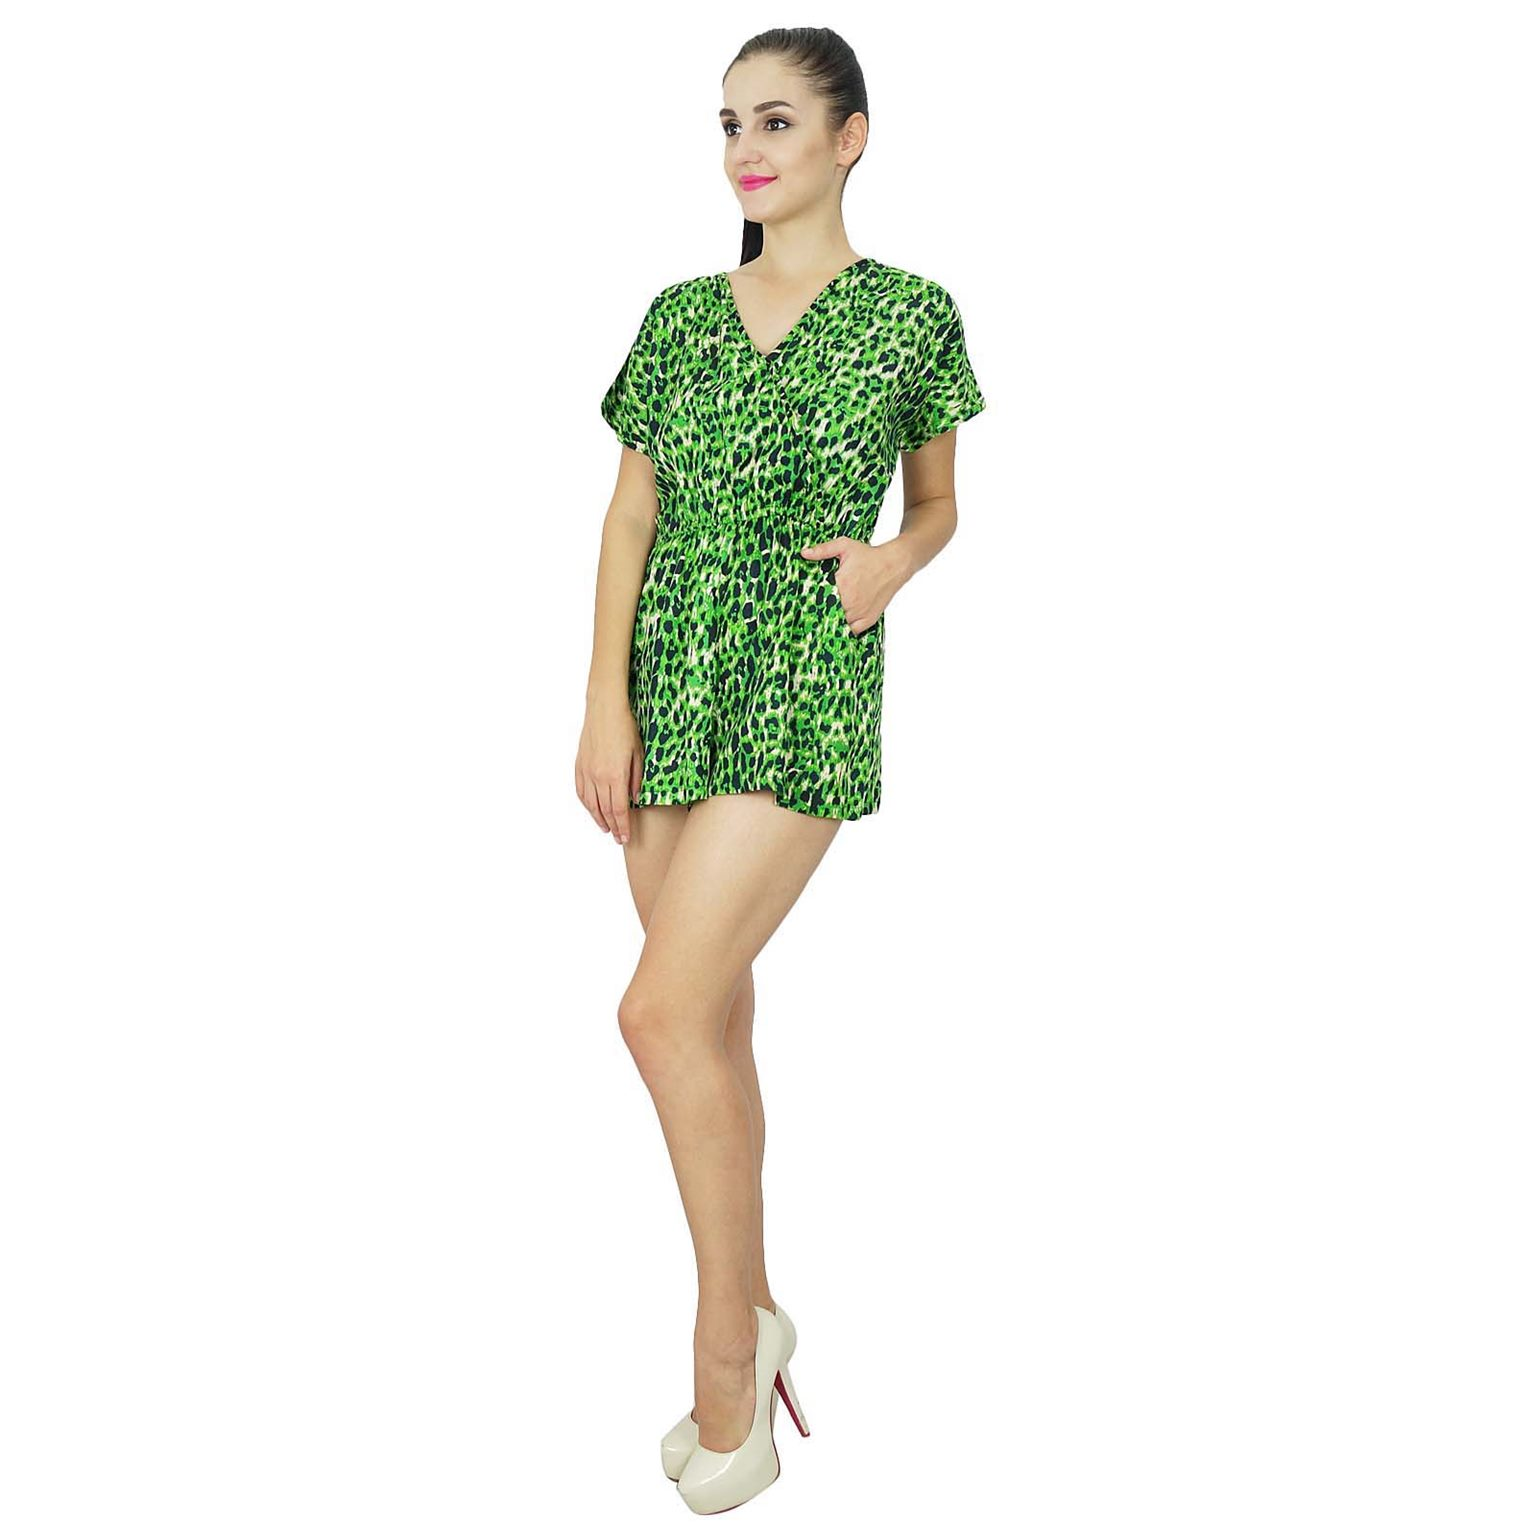 63c6bdd257 Bimba Womens Casual Short Jumpsuits Dress Printed Green Rayon Playsuit